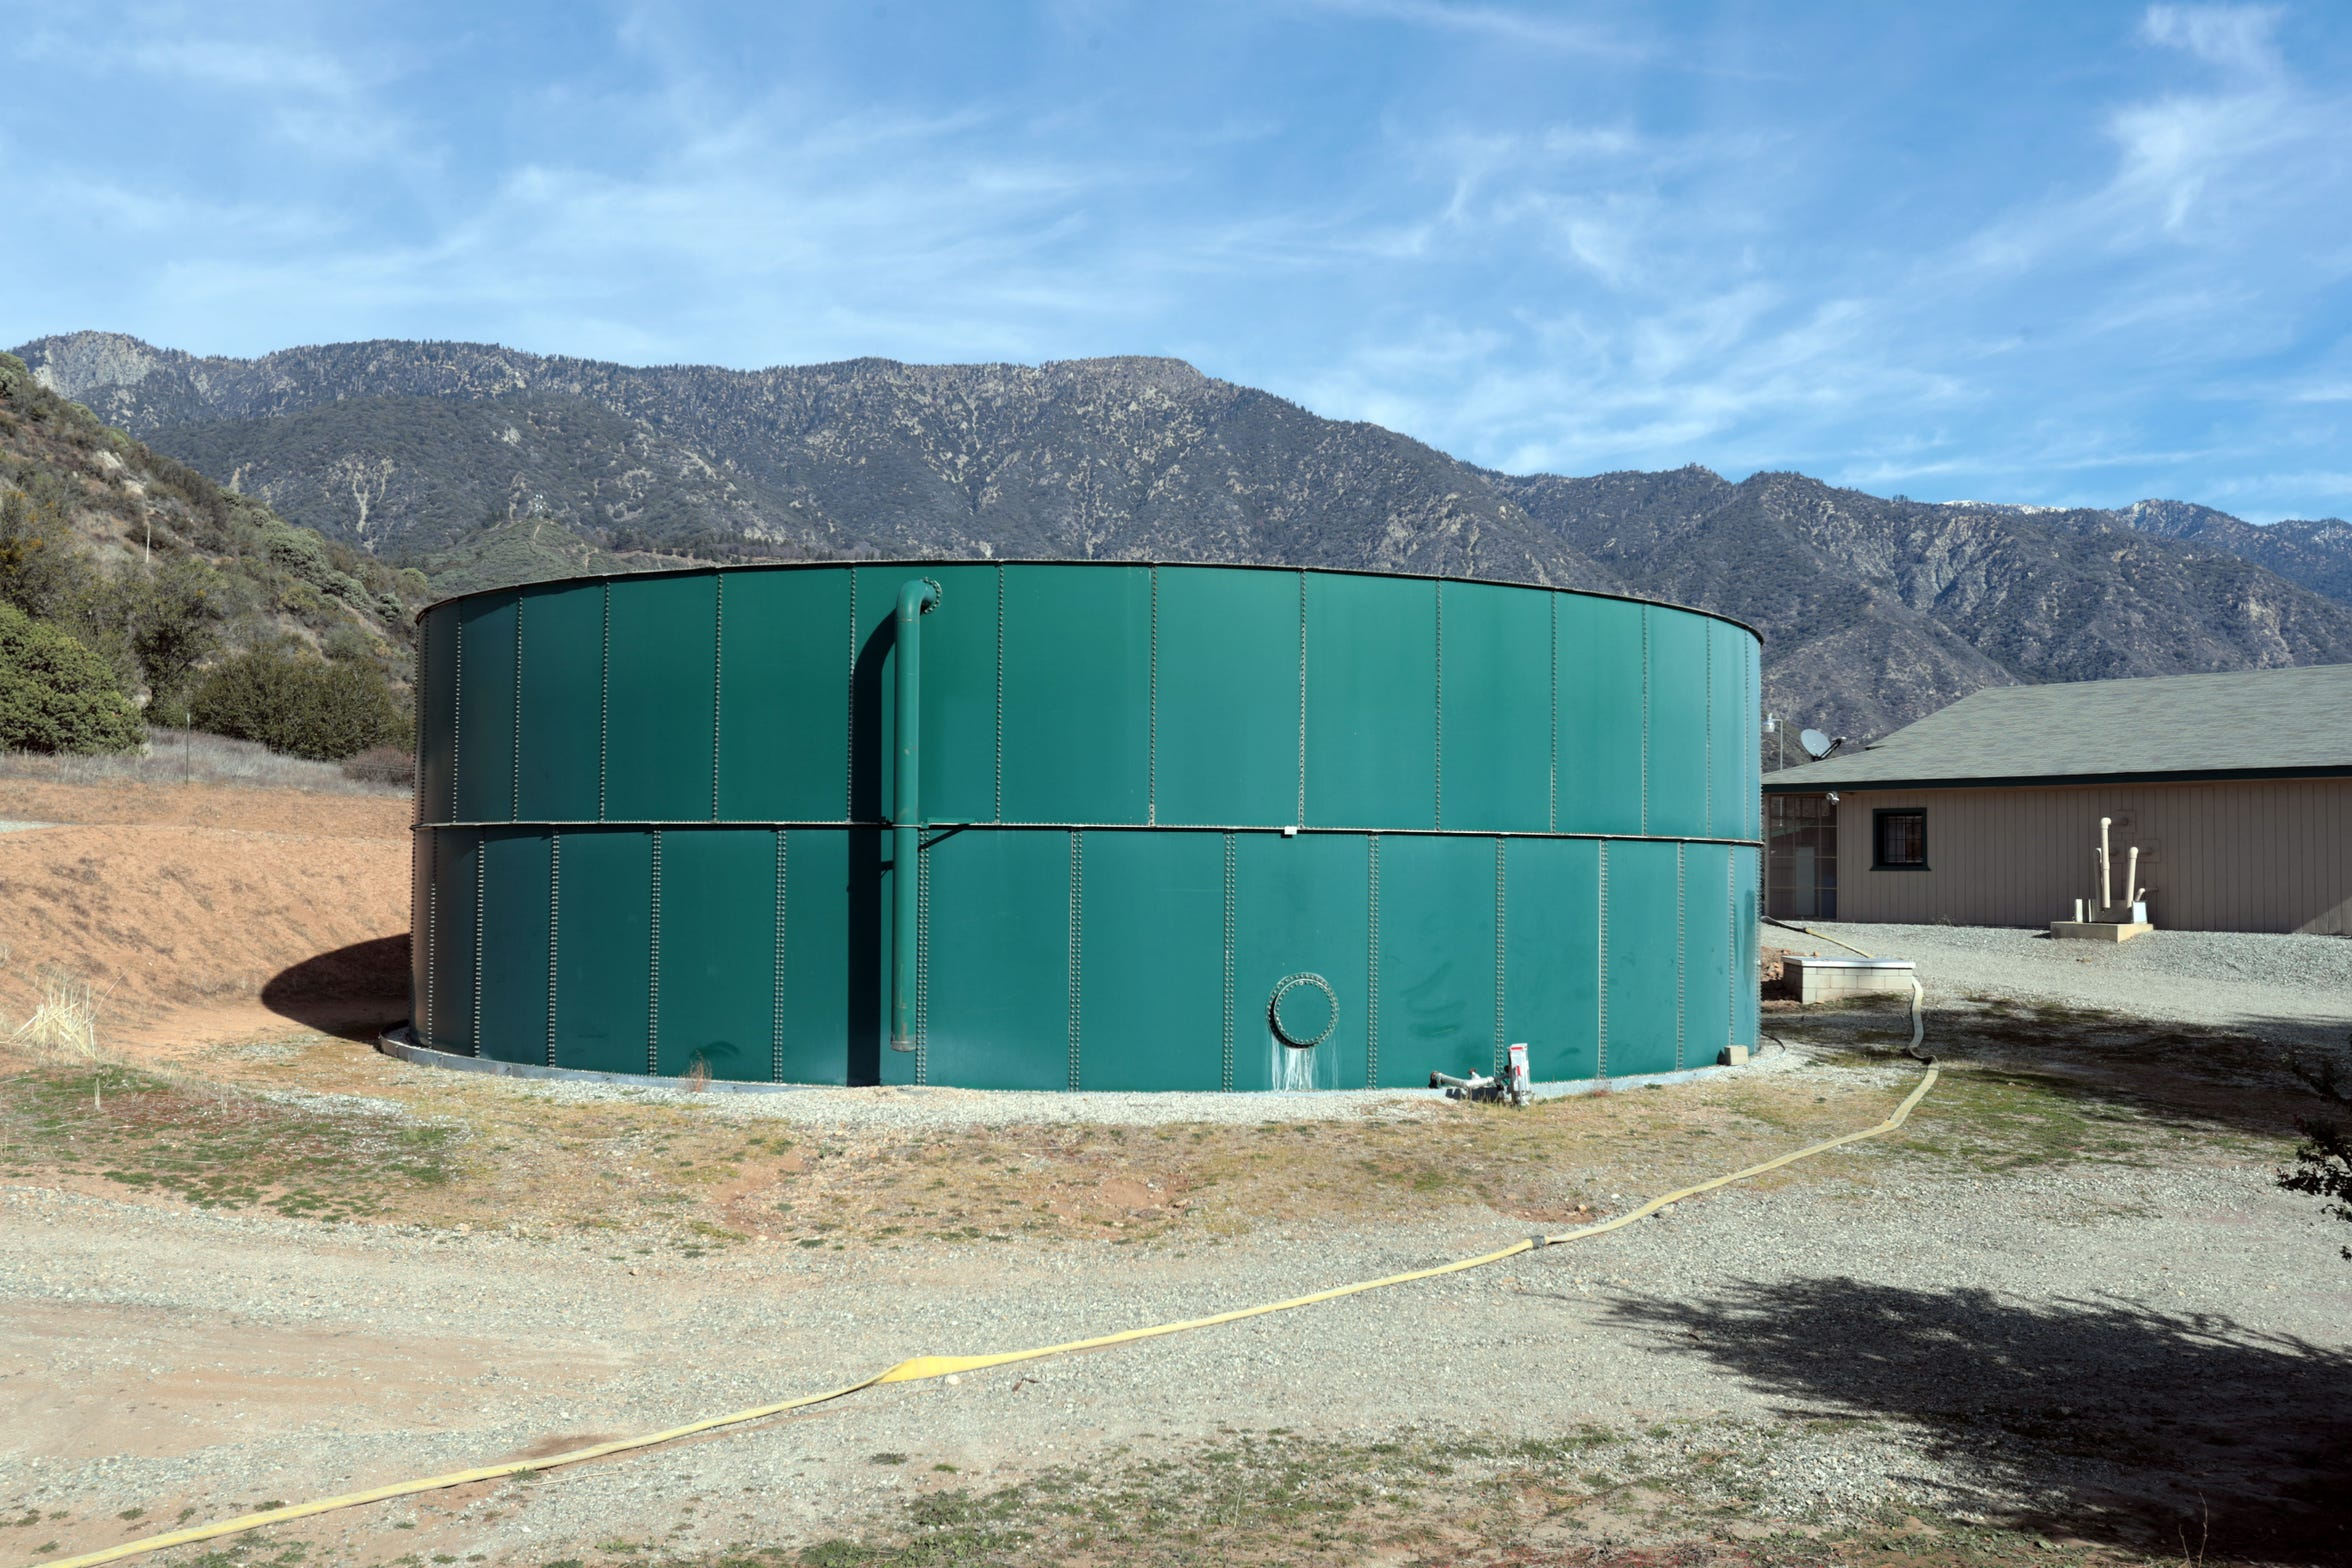 The water tank at Banning Heights Mutual Water Company.